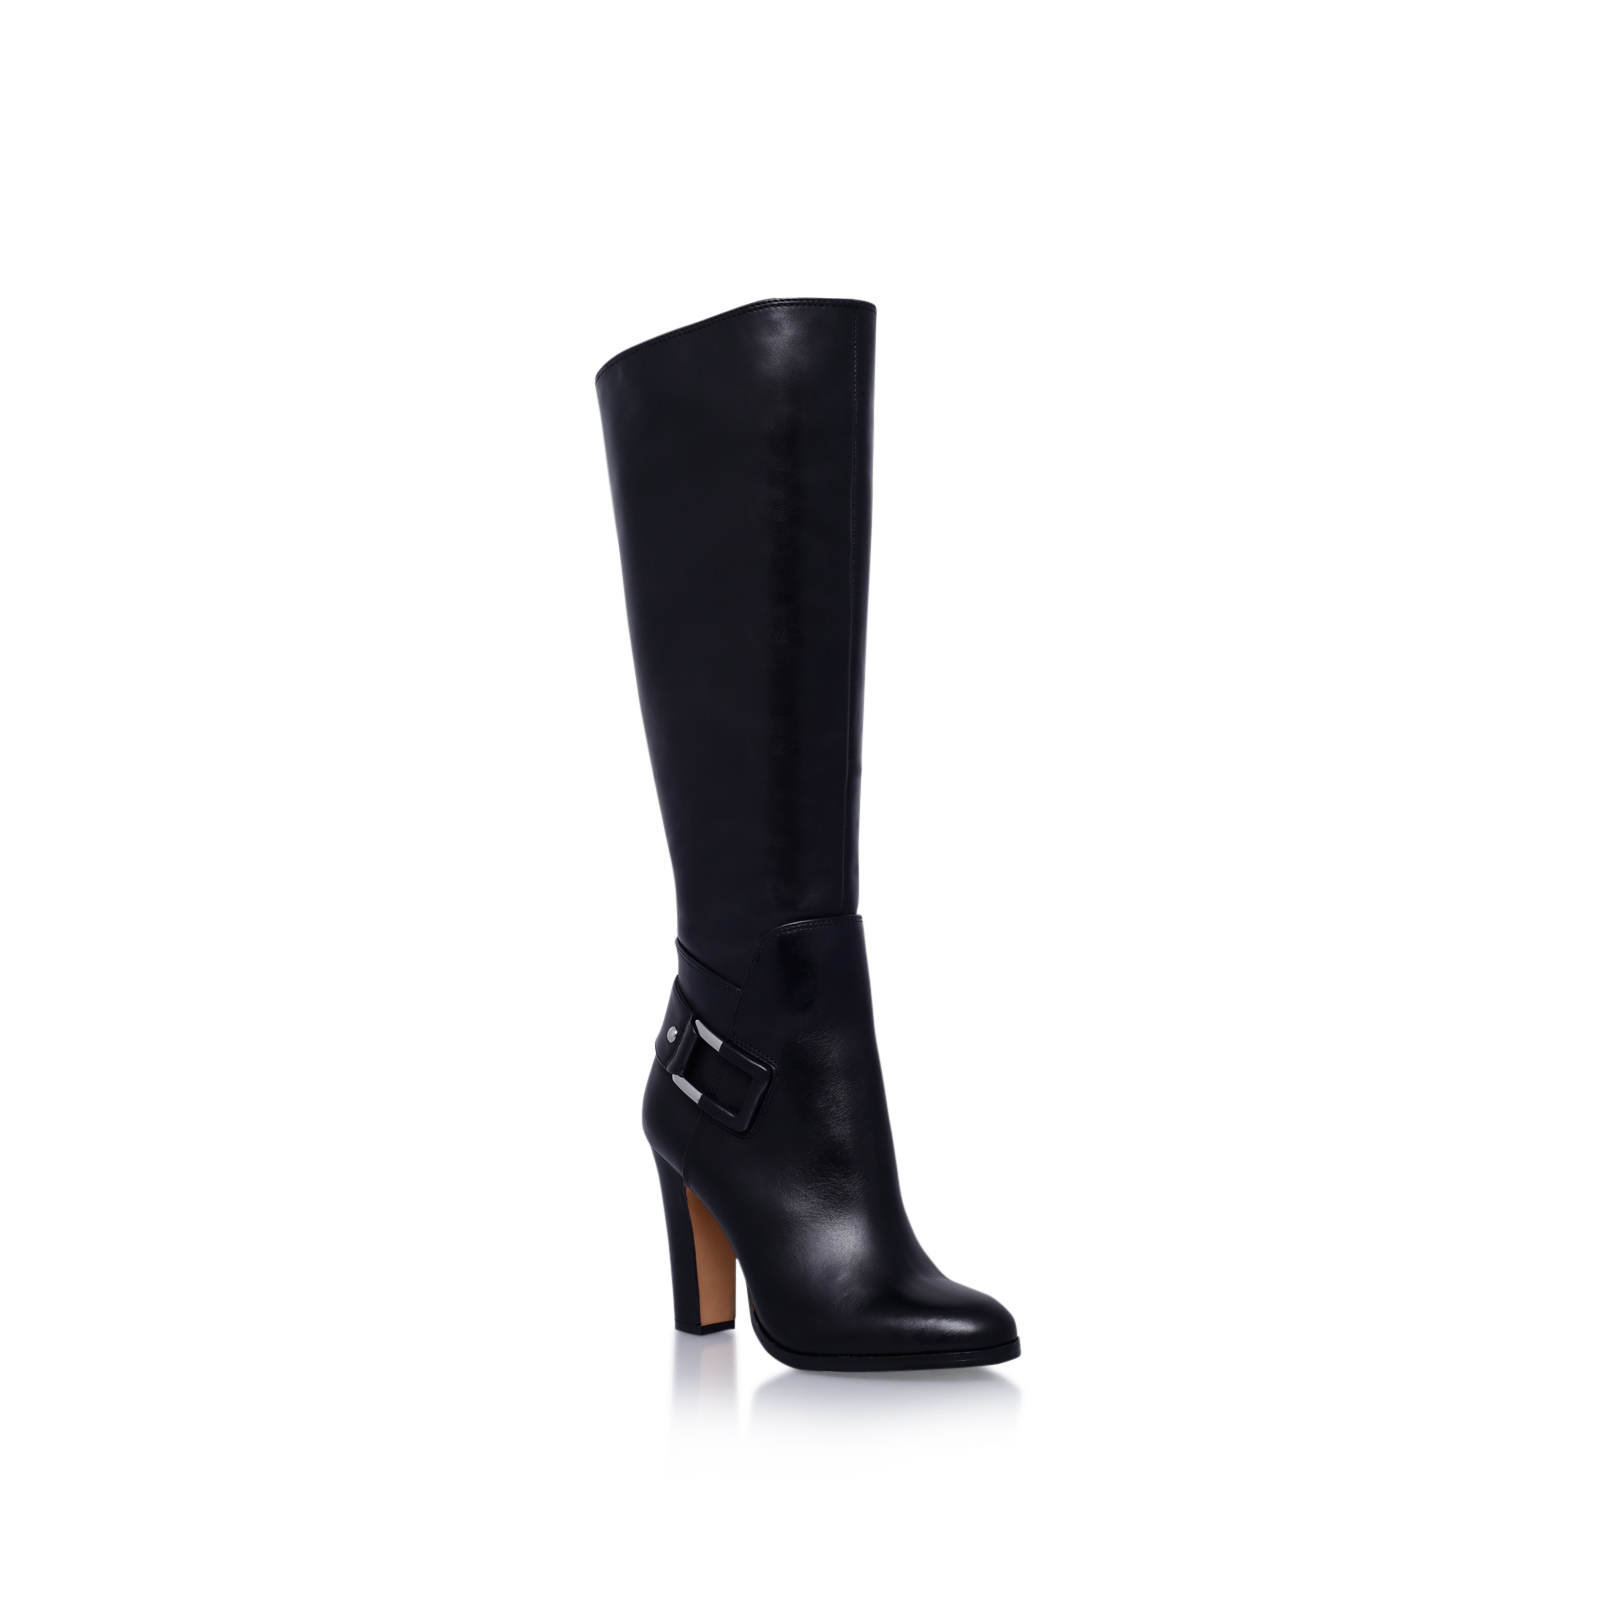 Vince Camuto Cheree Black High Heel Knee Boots By Vince